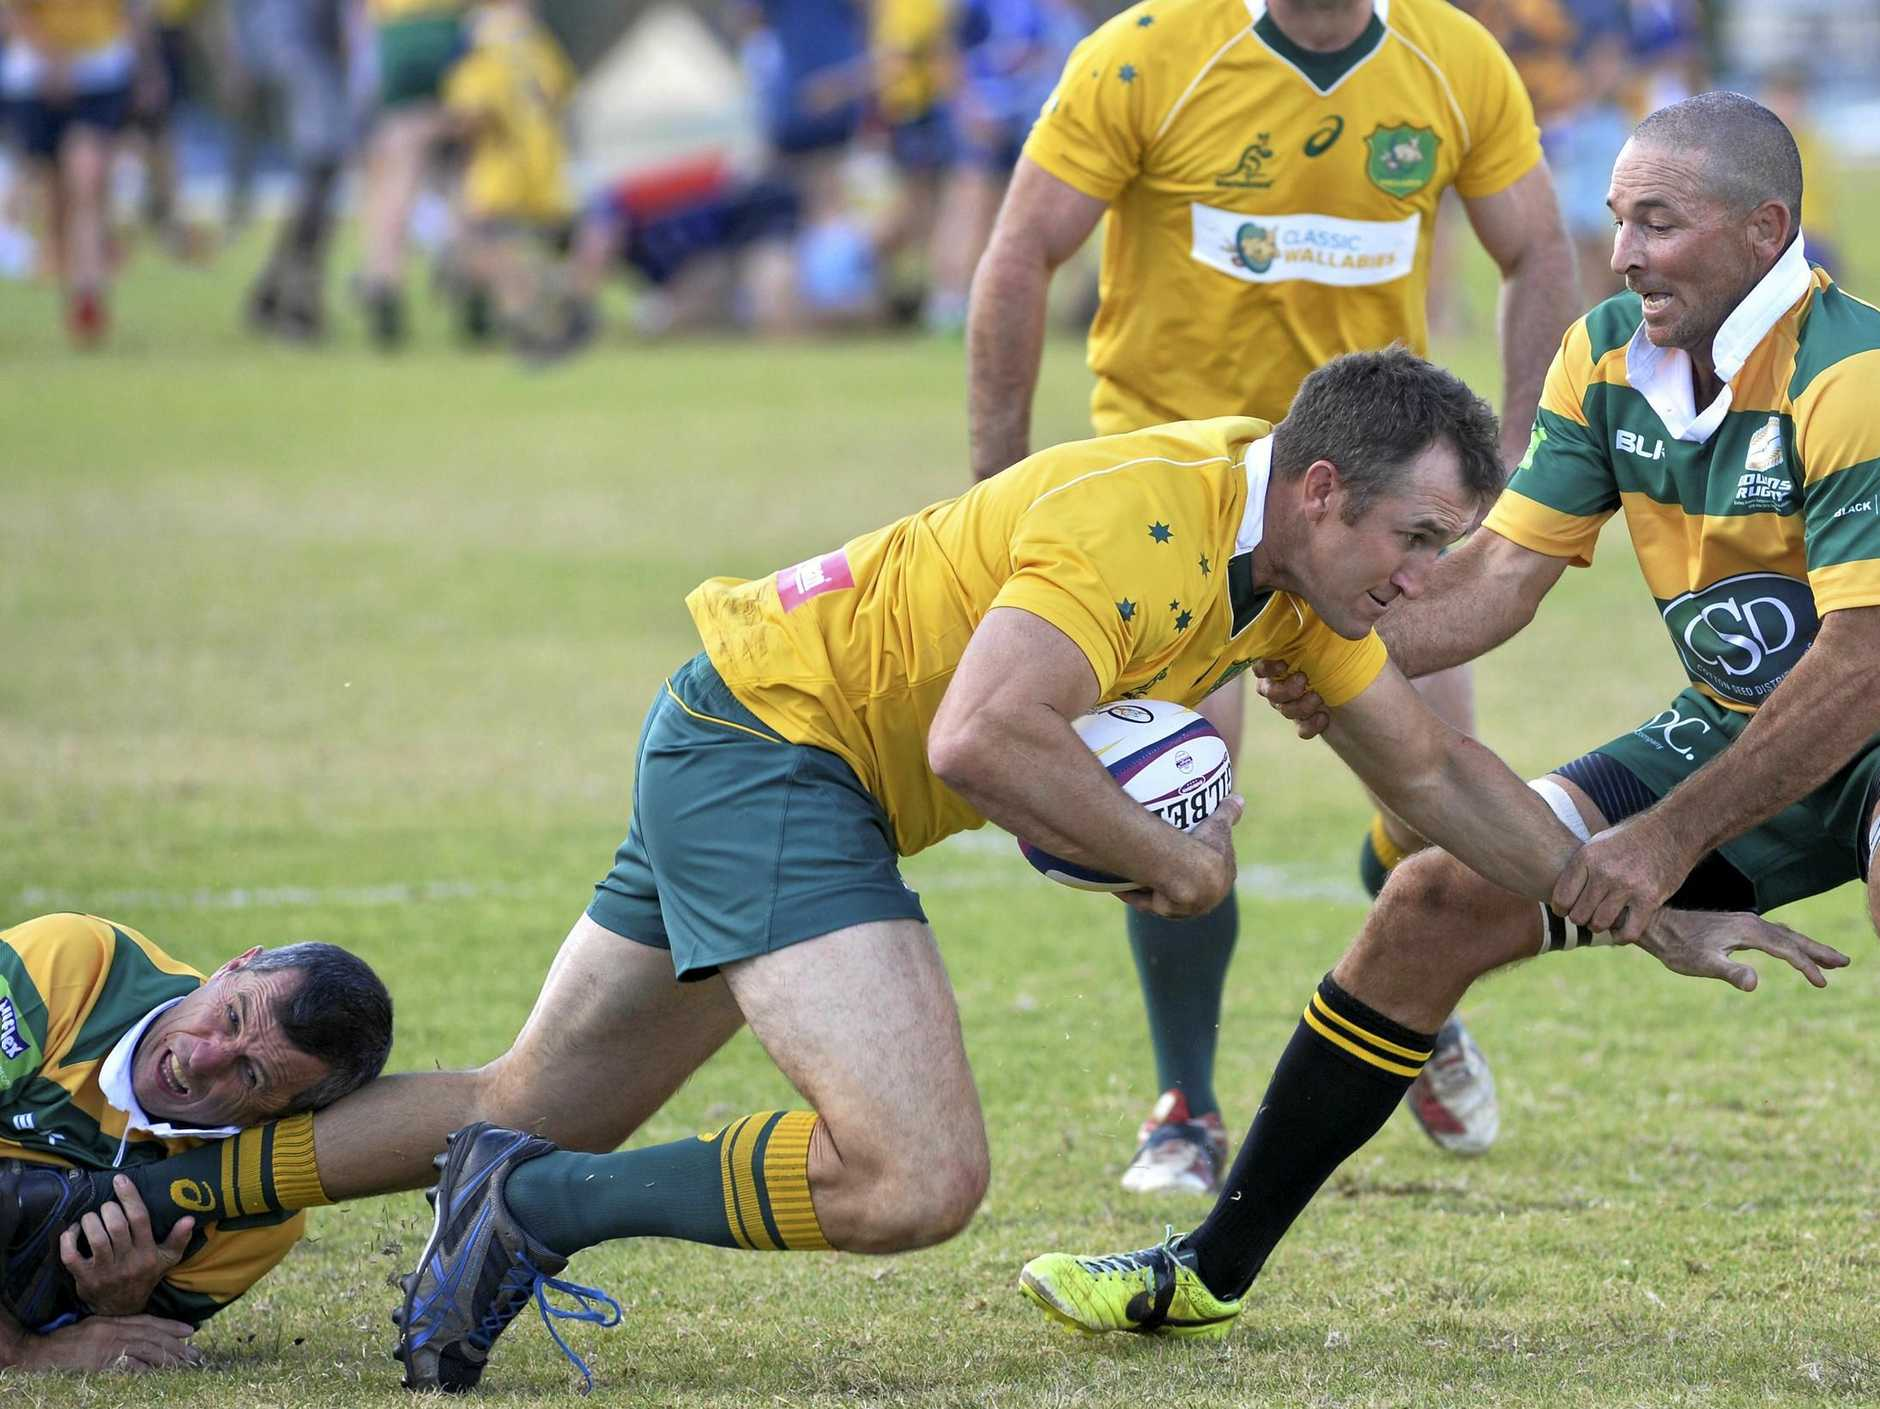 Scott Barton of Classic Wallabies against Darling Downs Over 35s Barbarians at Gold Park, Sunday, June 10, 2018.